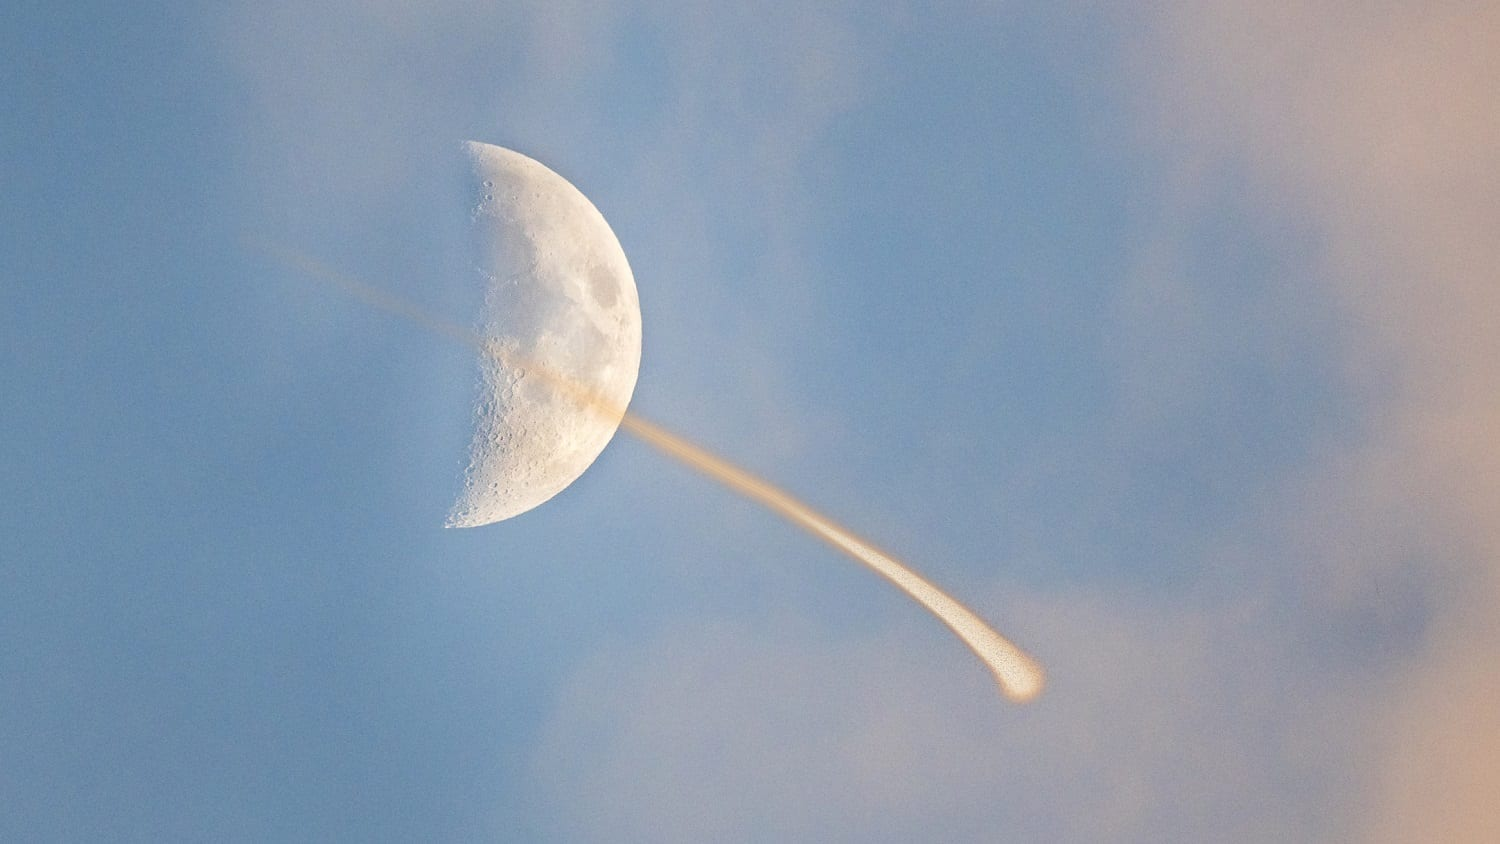 Meteor in front of the waxing moon: ID 140238662 © William Wise | Dreamstime.com